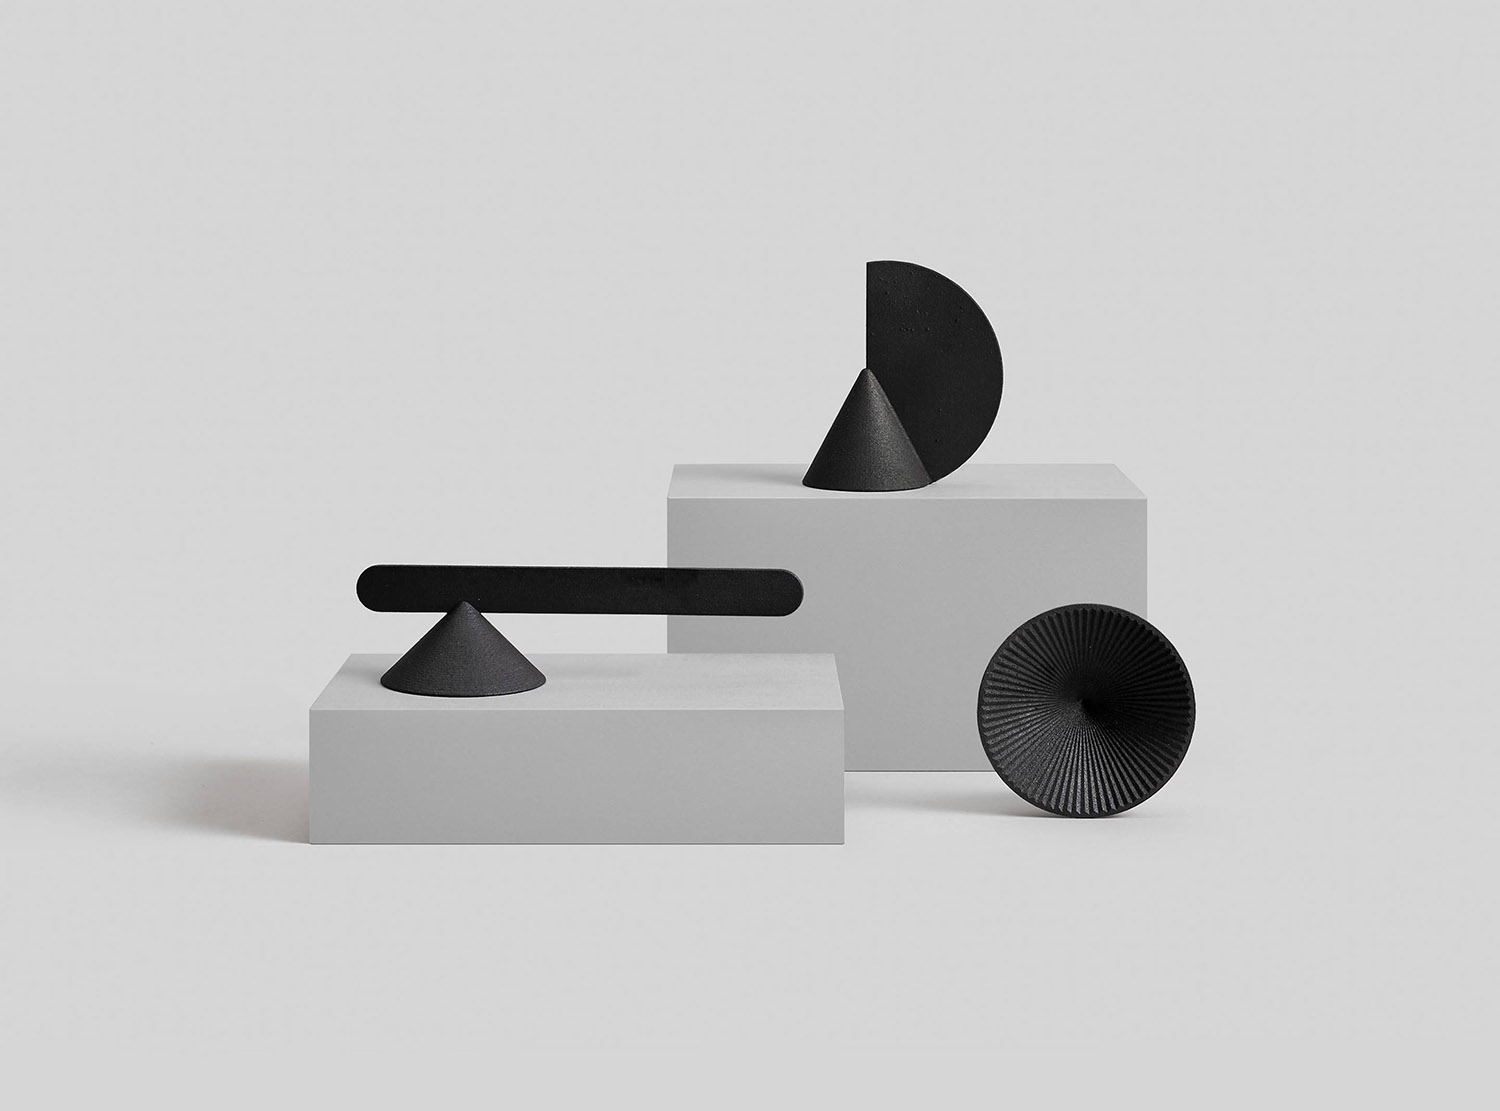 iGNANT_Design_Geometric_Candle_Snuffers_OTHR_1